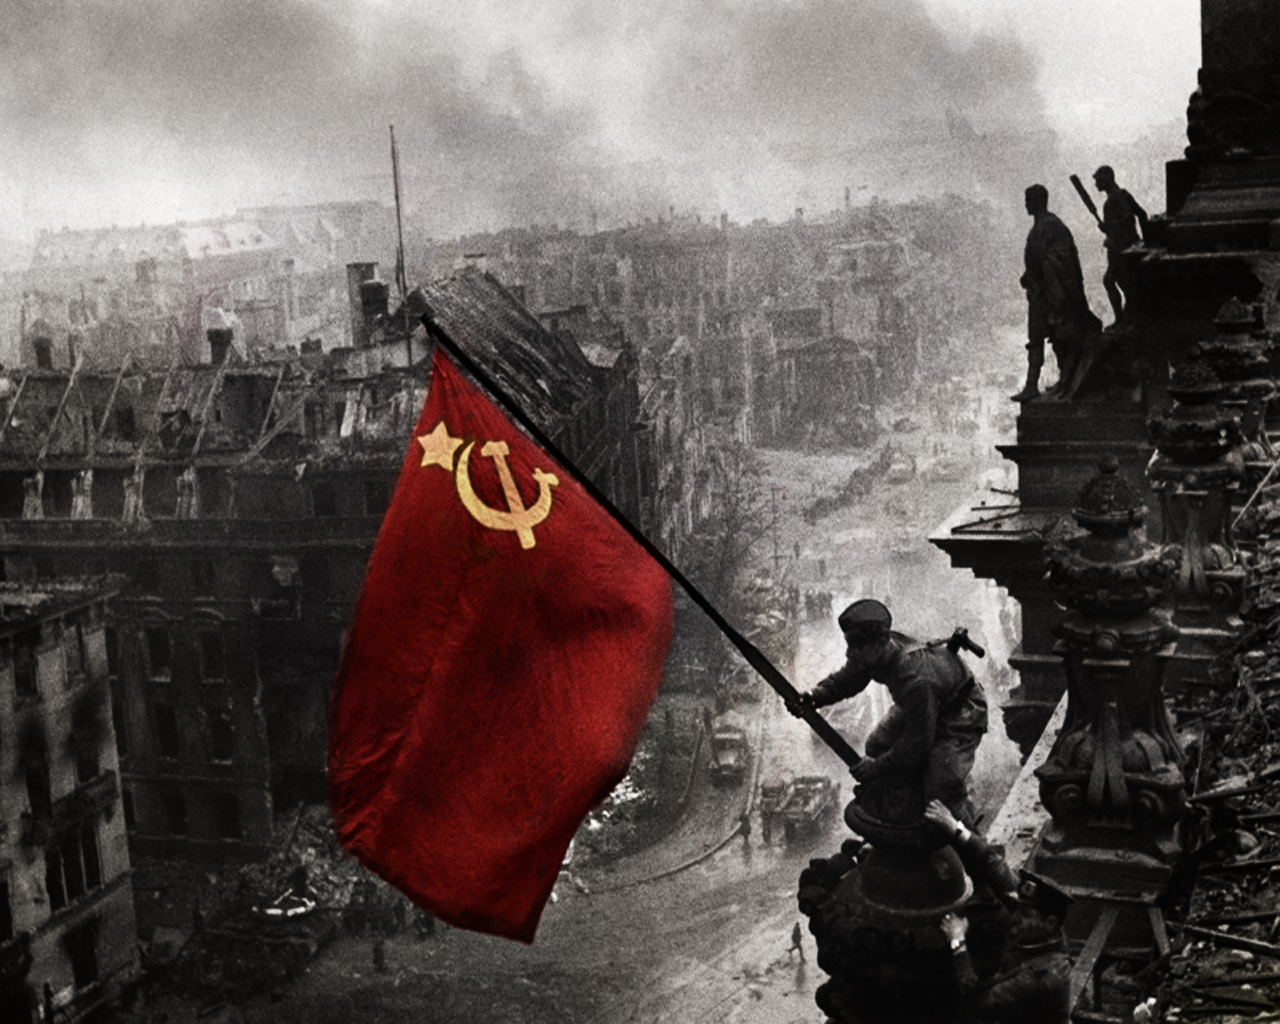 The_Red_Flag_by_xtrizz0r.jpg